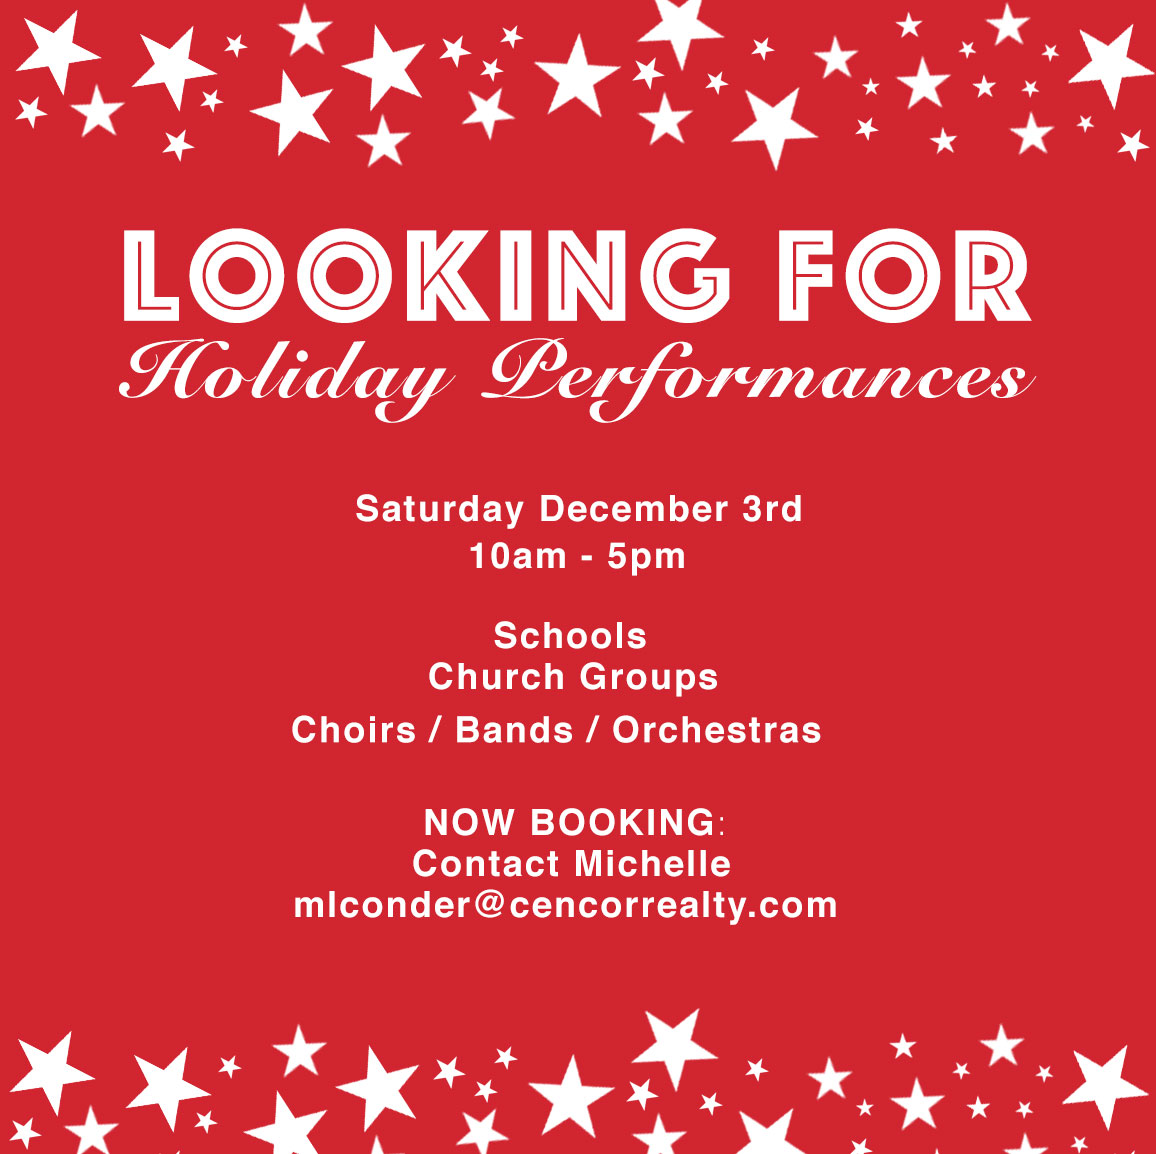 Dominion Ridge Holiday Performances